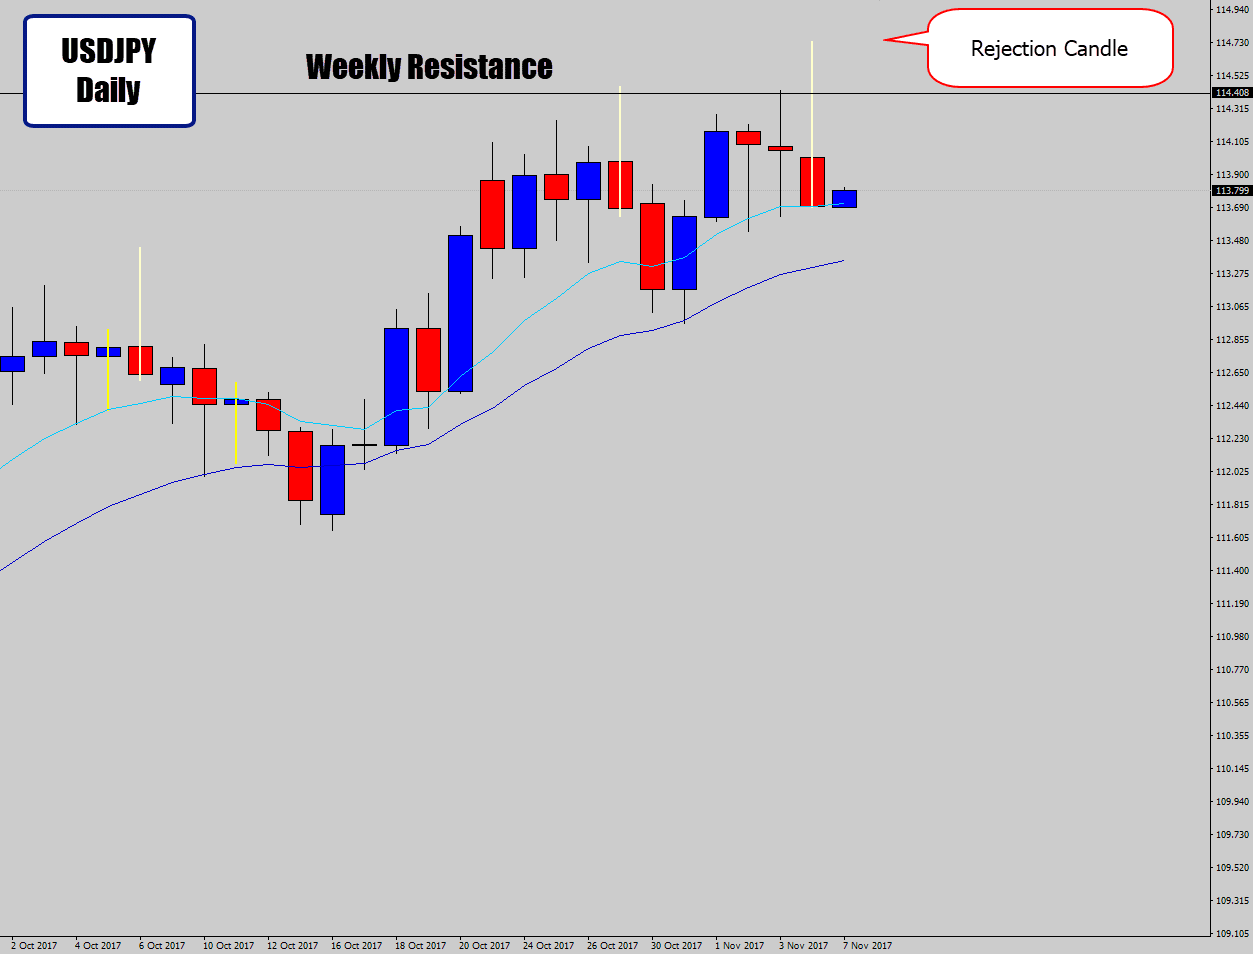 usdjpy weekly resistance level